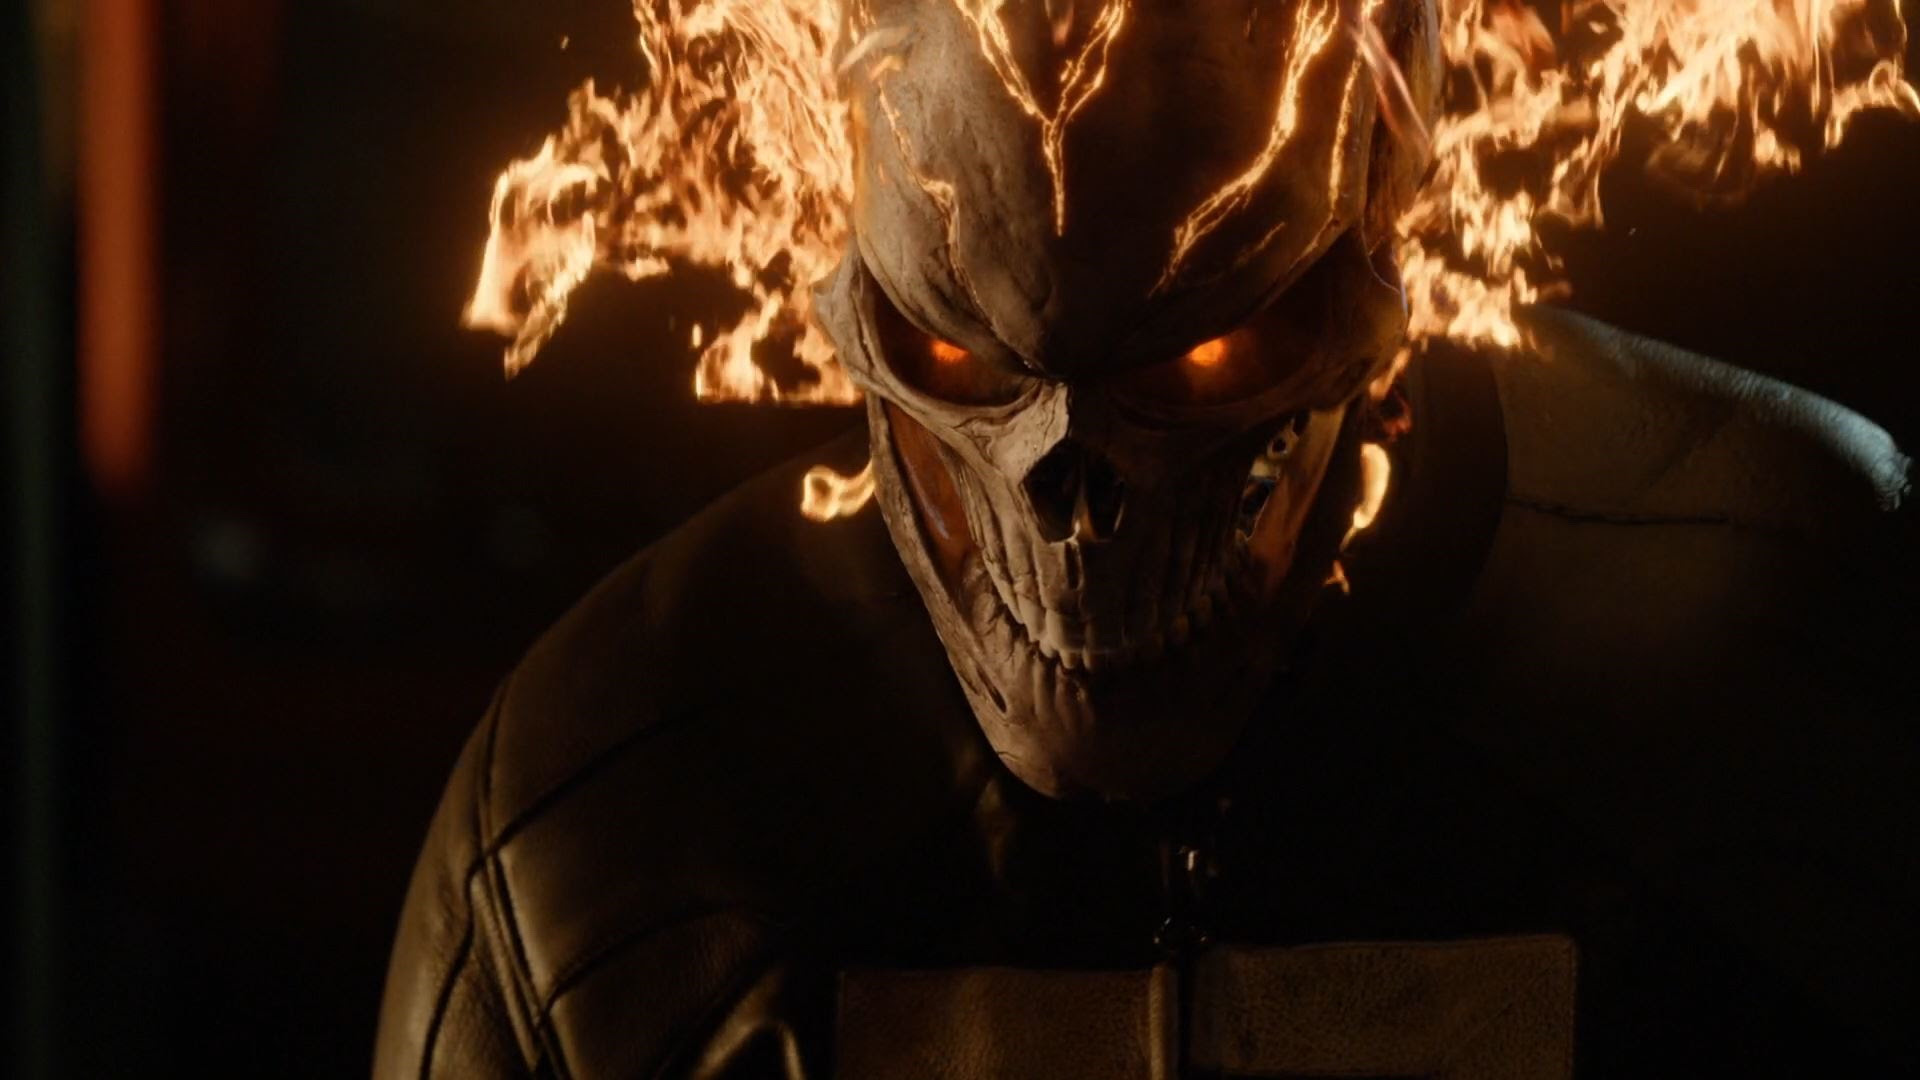 ghost rider agents of shield Full HD [1920×1080]